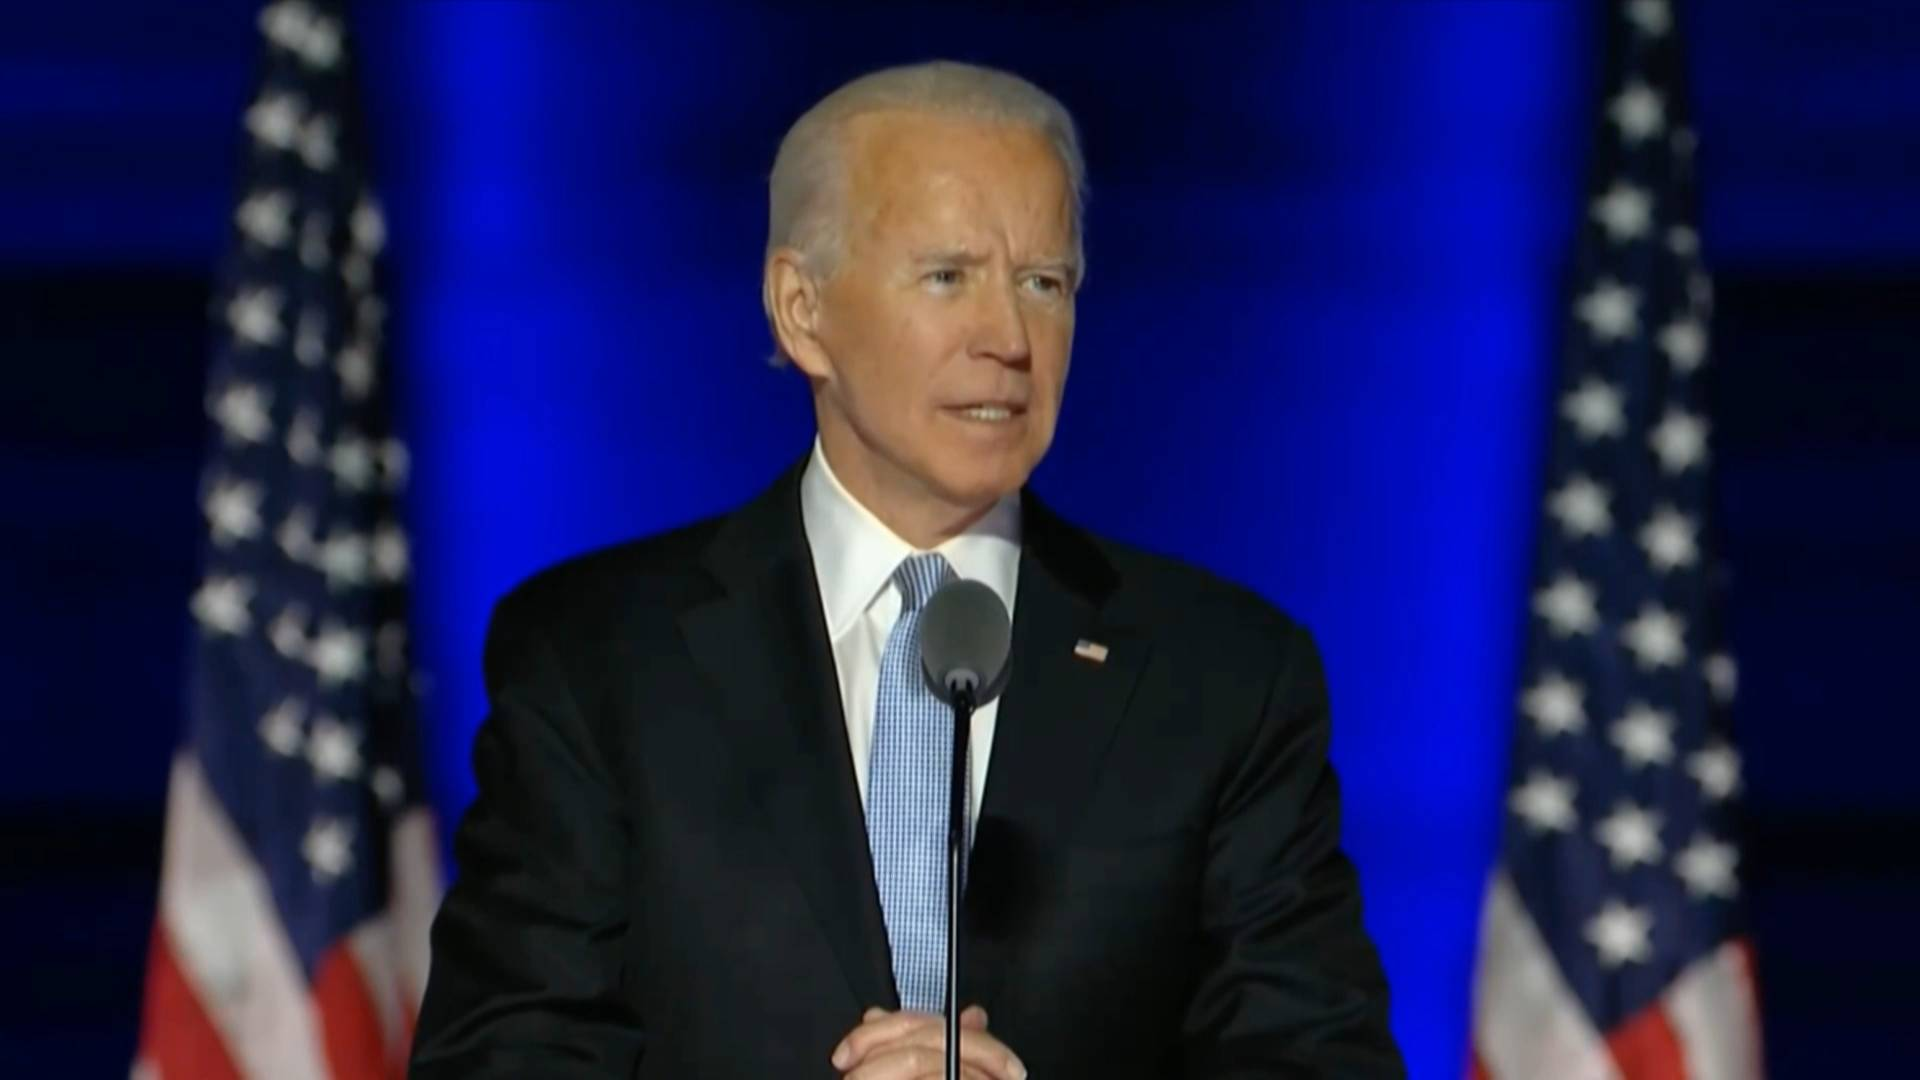 Biden declares victory after divided election, Trump refuses to concede defeat